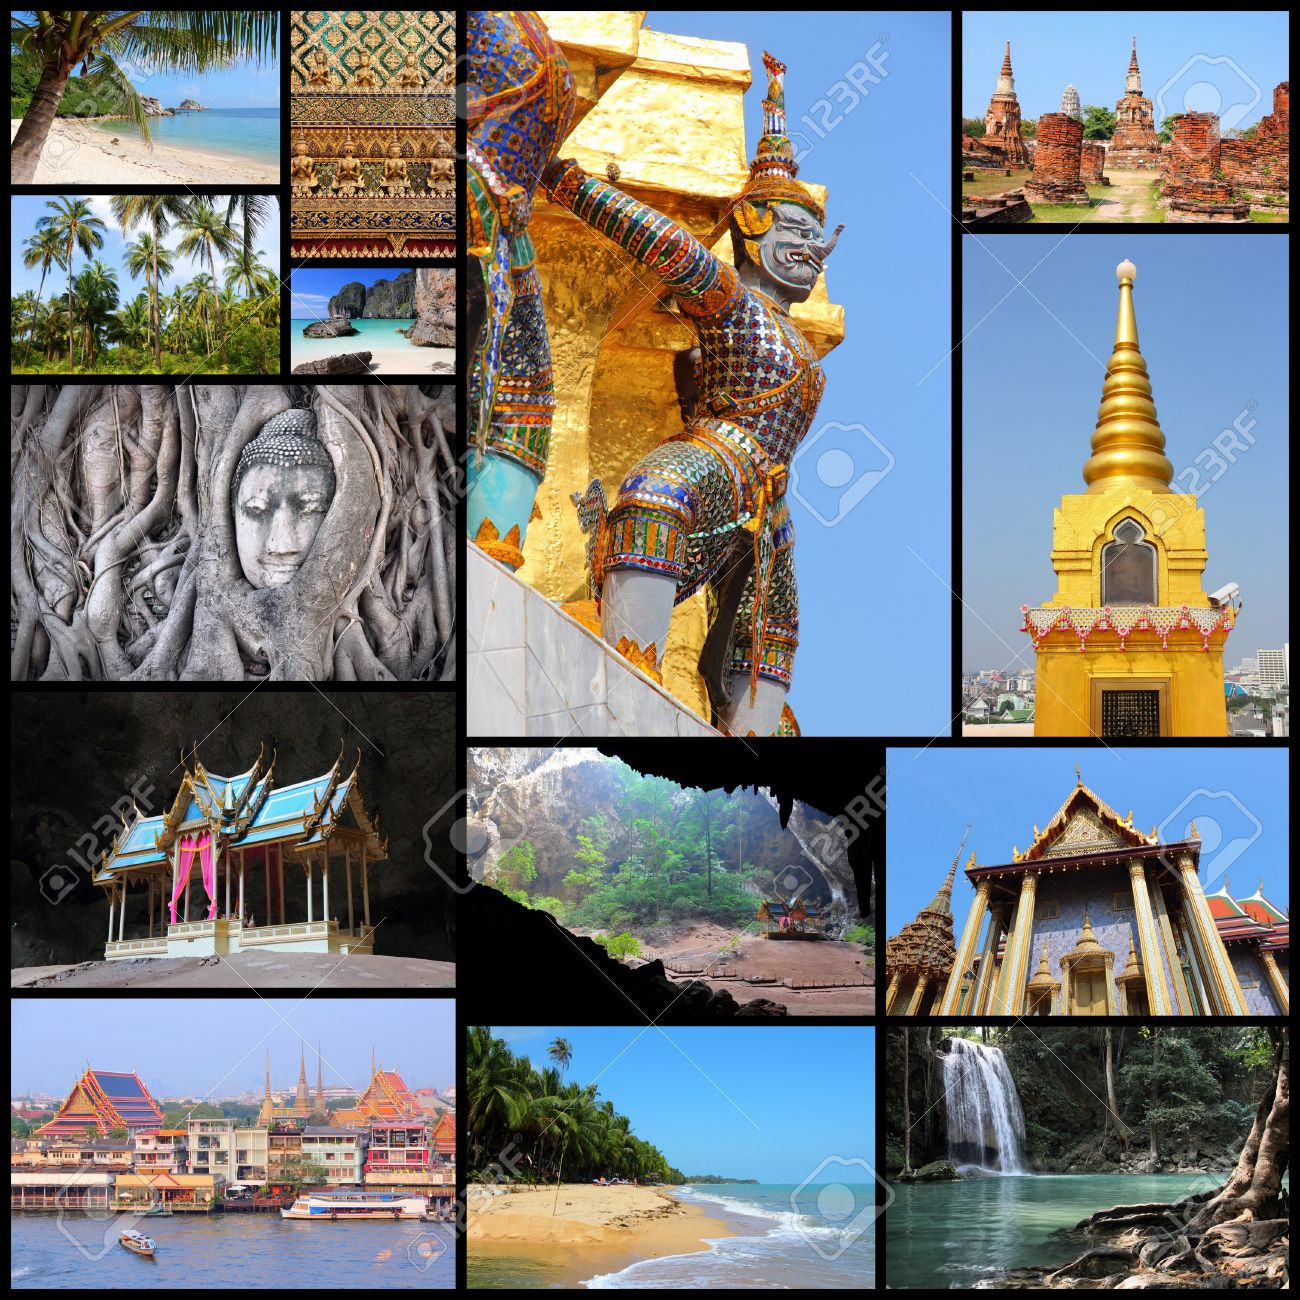 Travel Photo Collage From Thailand Includes Major Landmarks